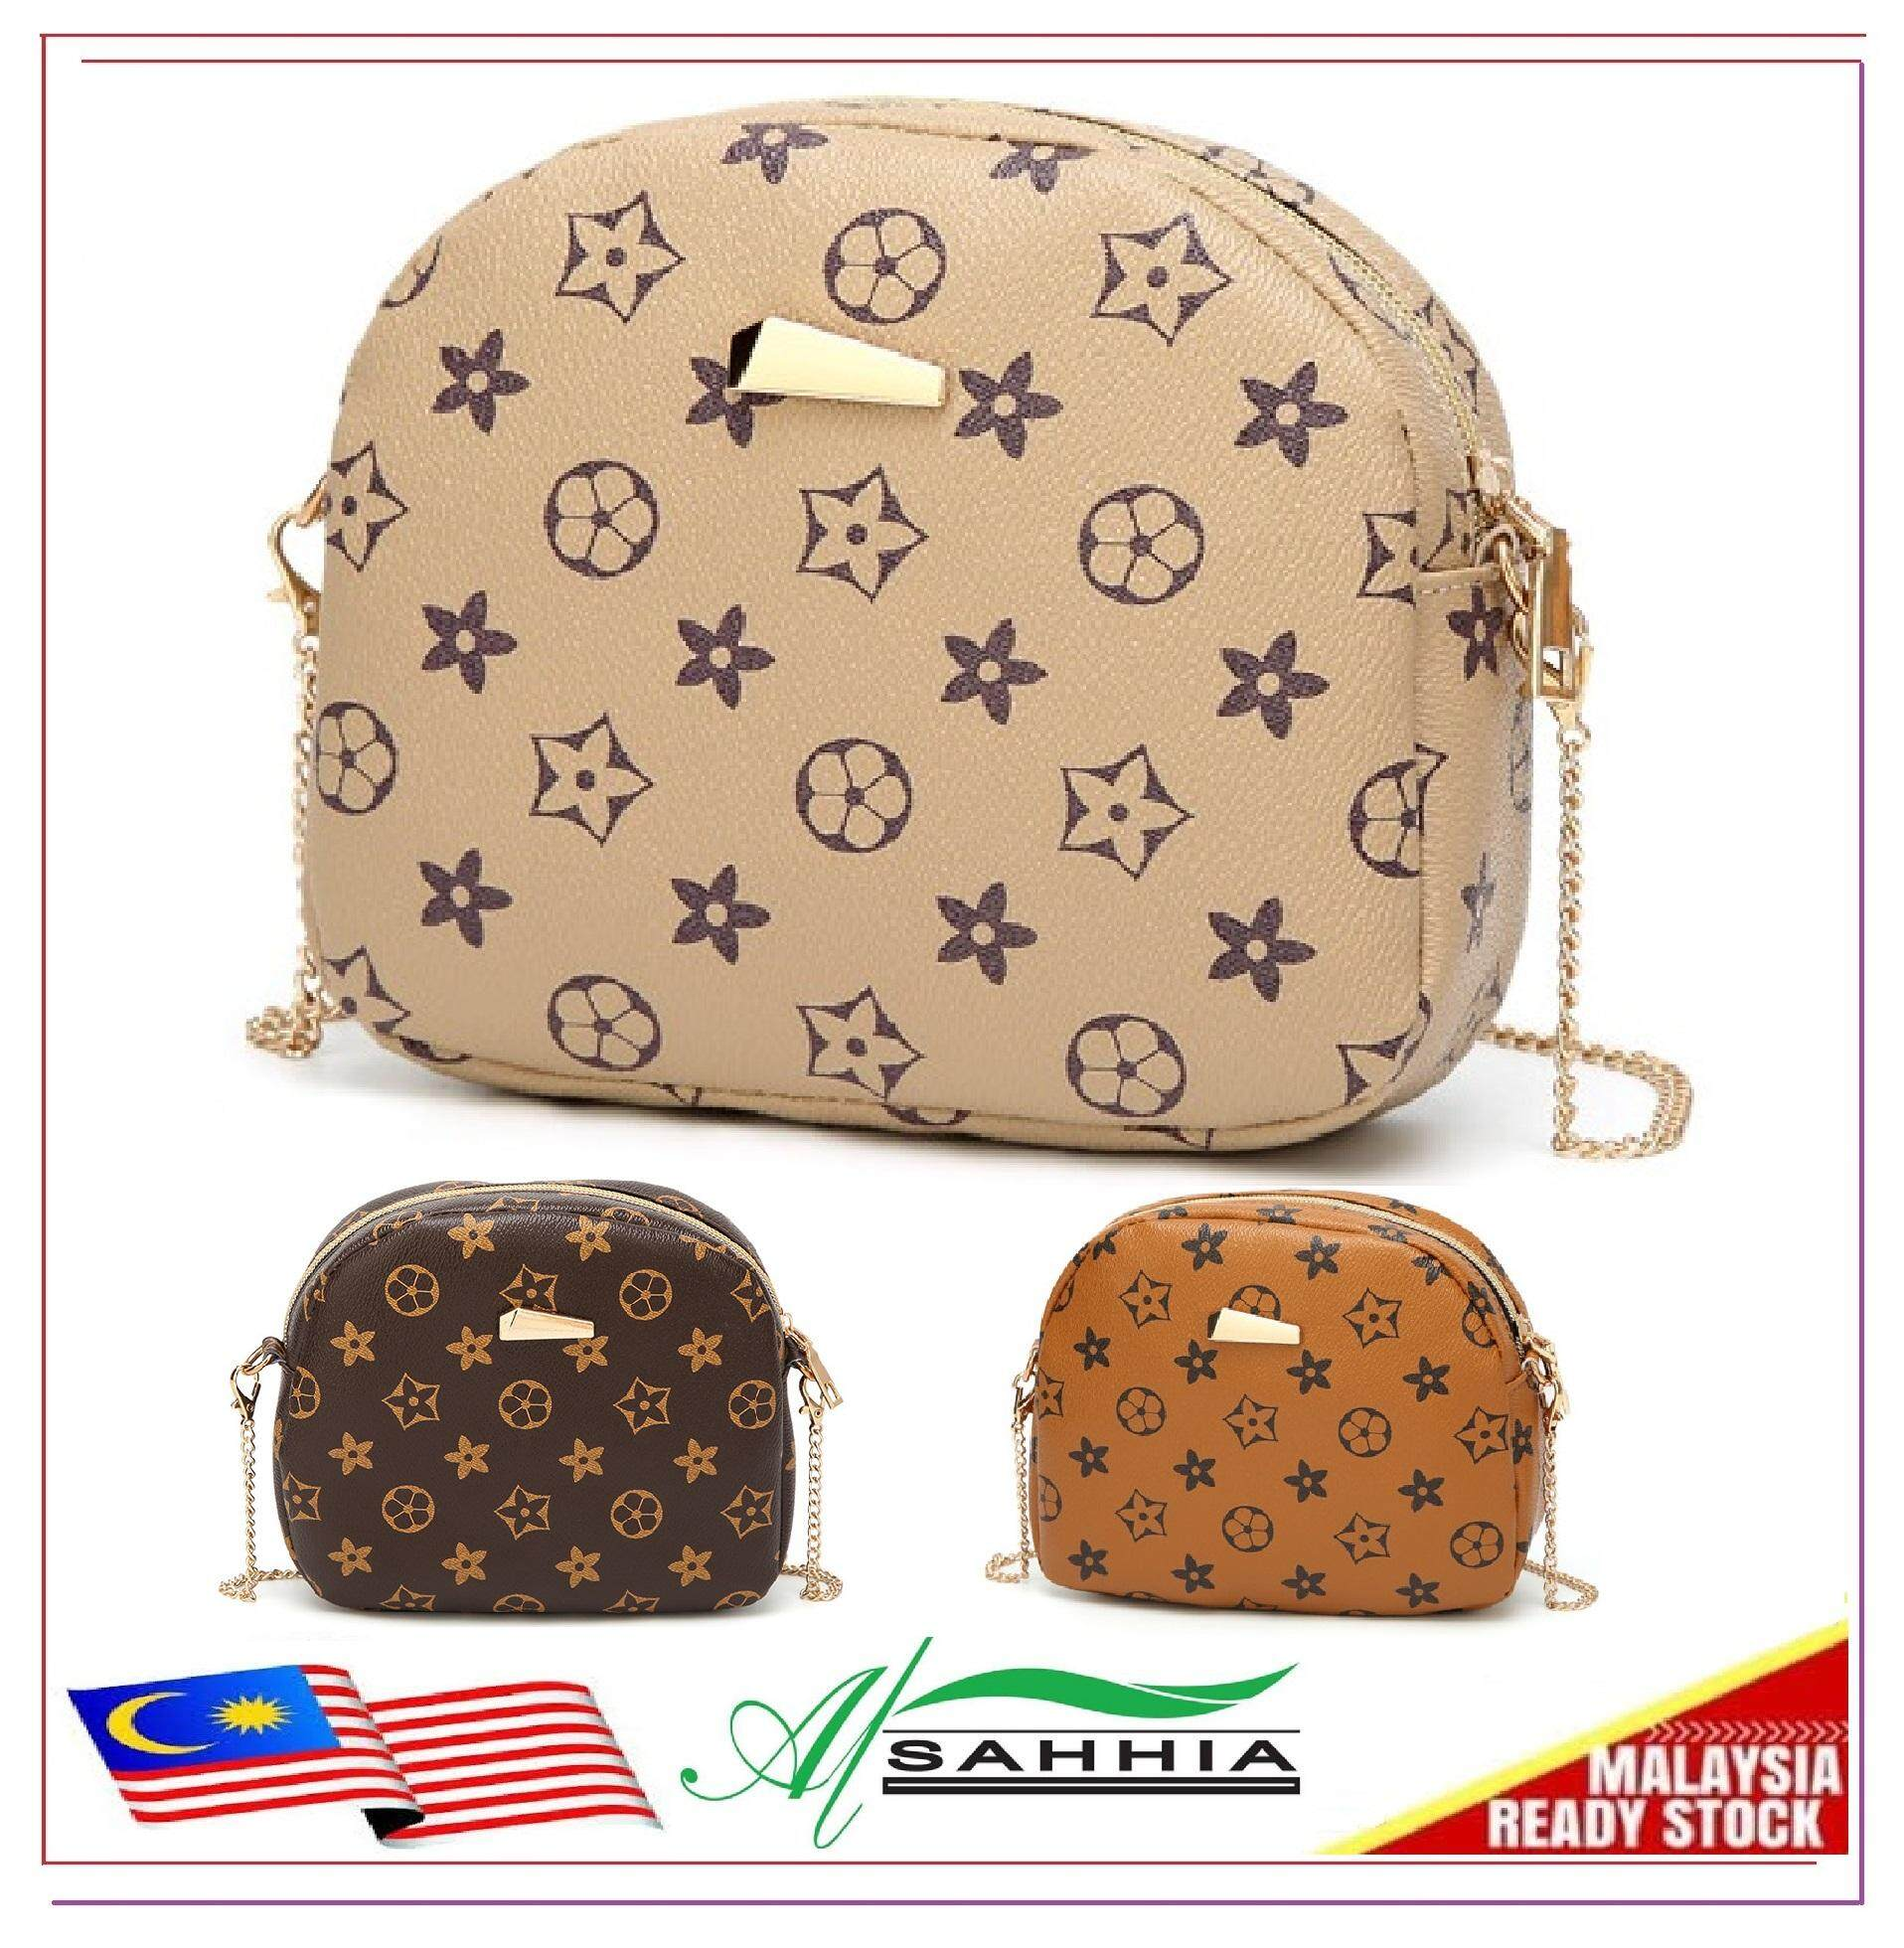 d4605ebe04 Al Sahhia Ready Stock Star Brown Chain European Syle Sling Bag